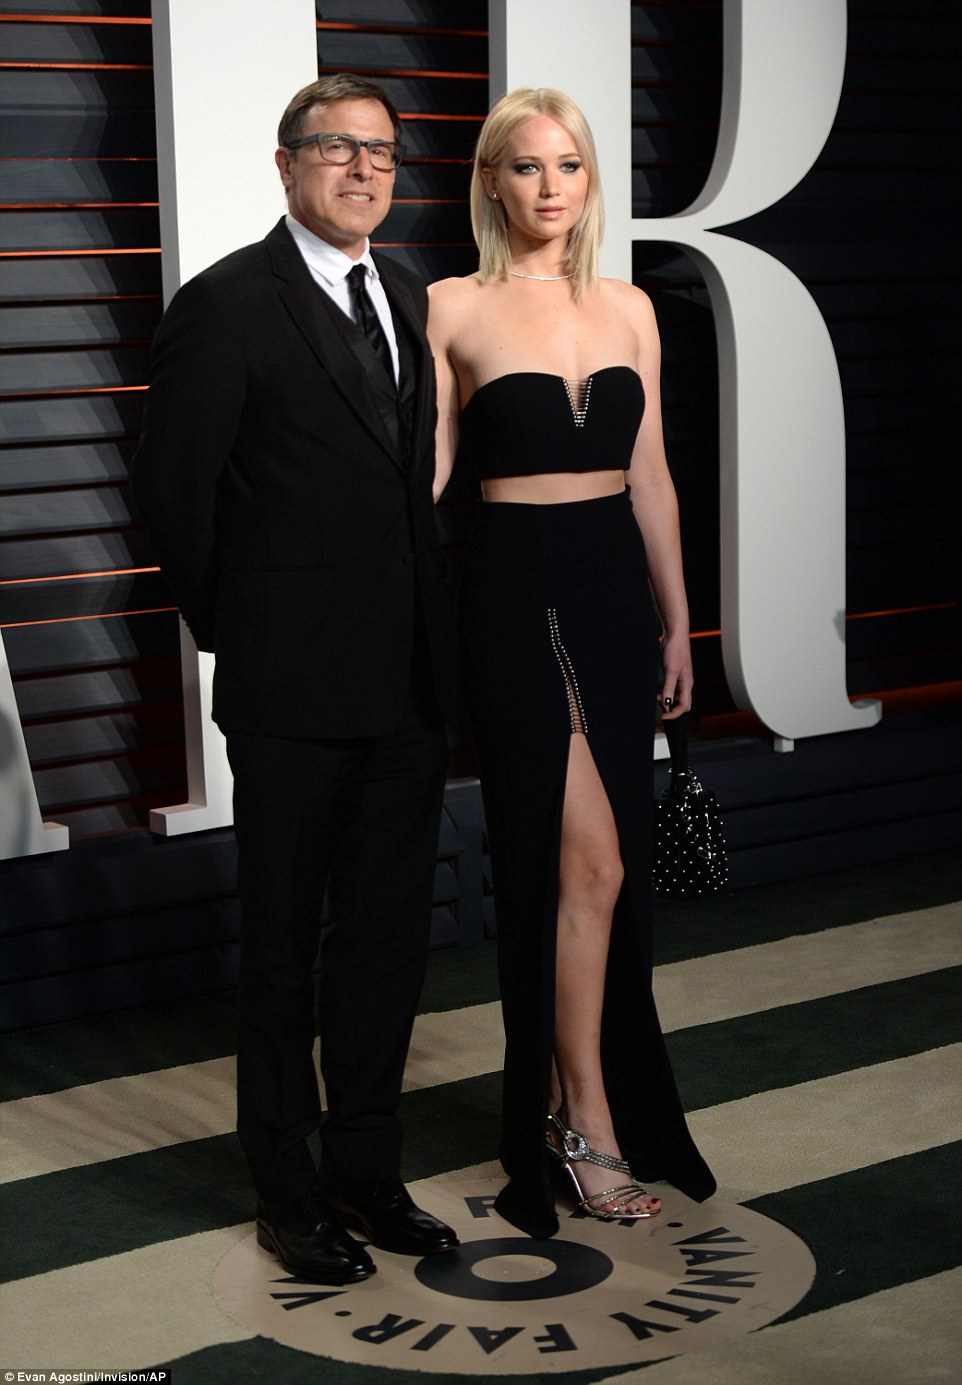 Jennifer Lawrence shows abs at the Vanity Fair Oscars Party